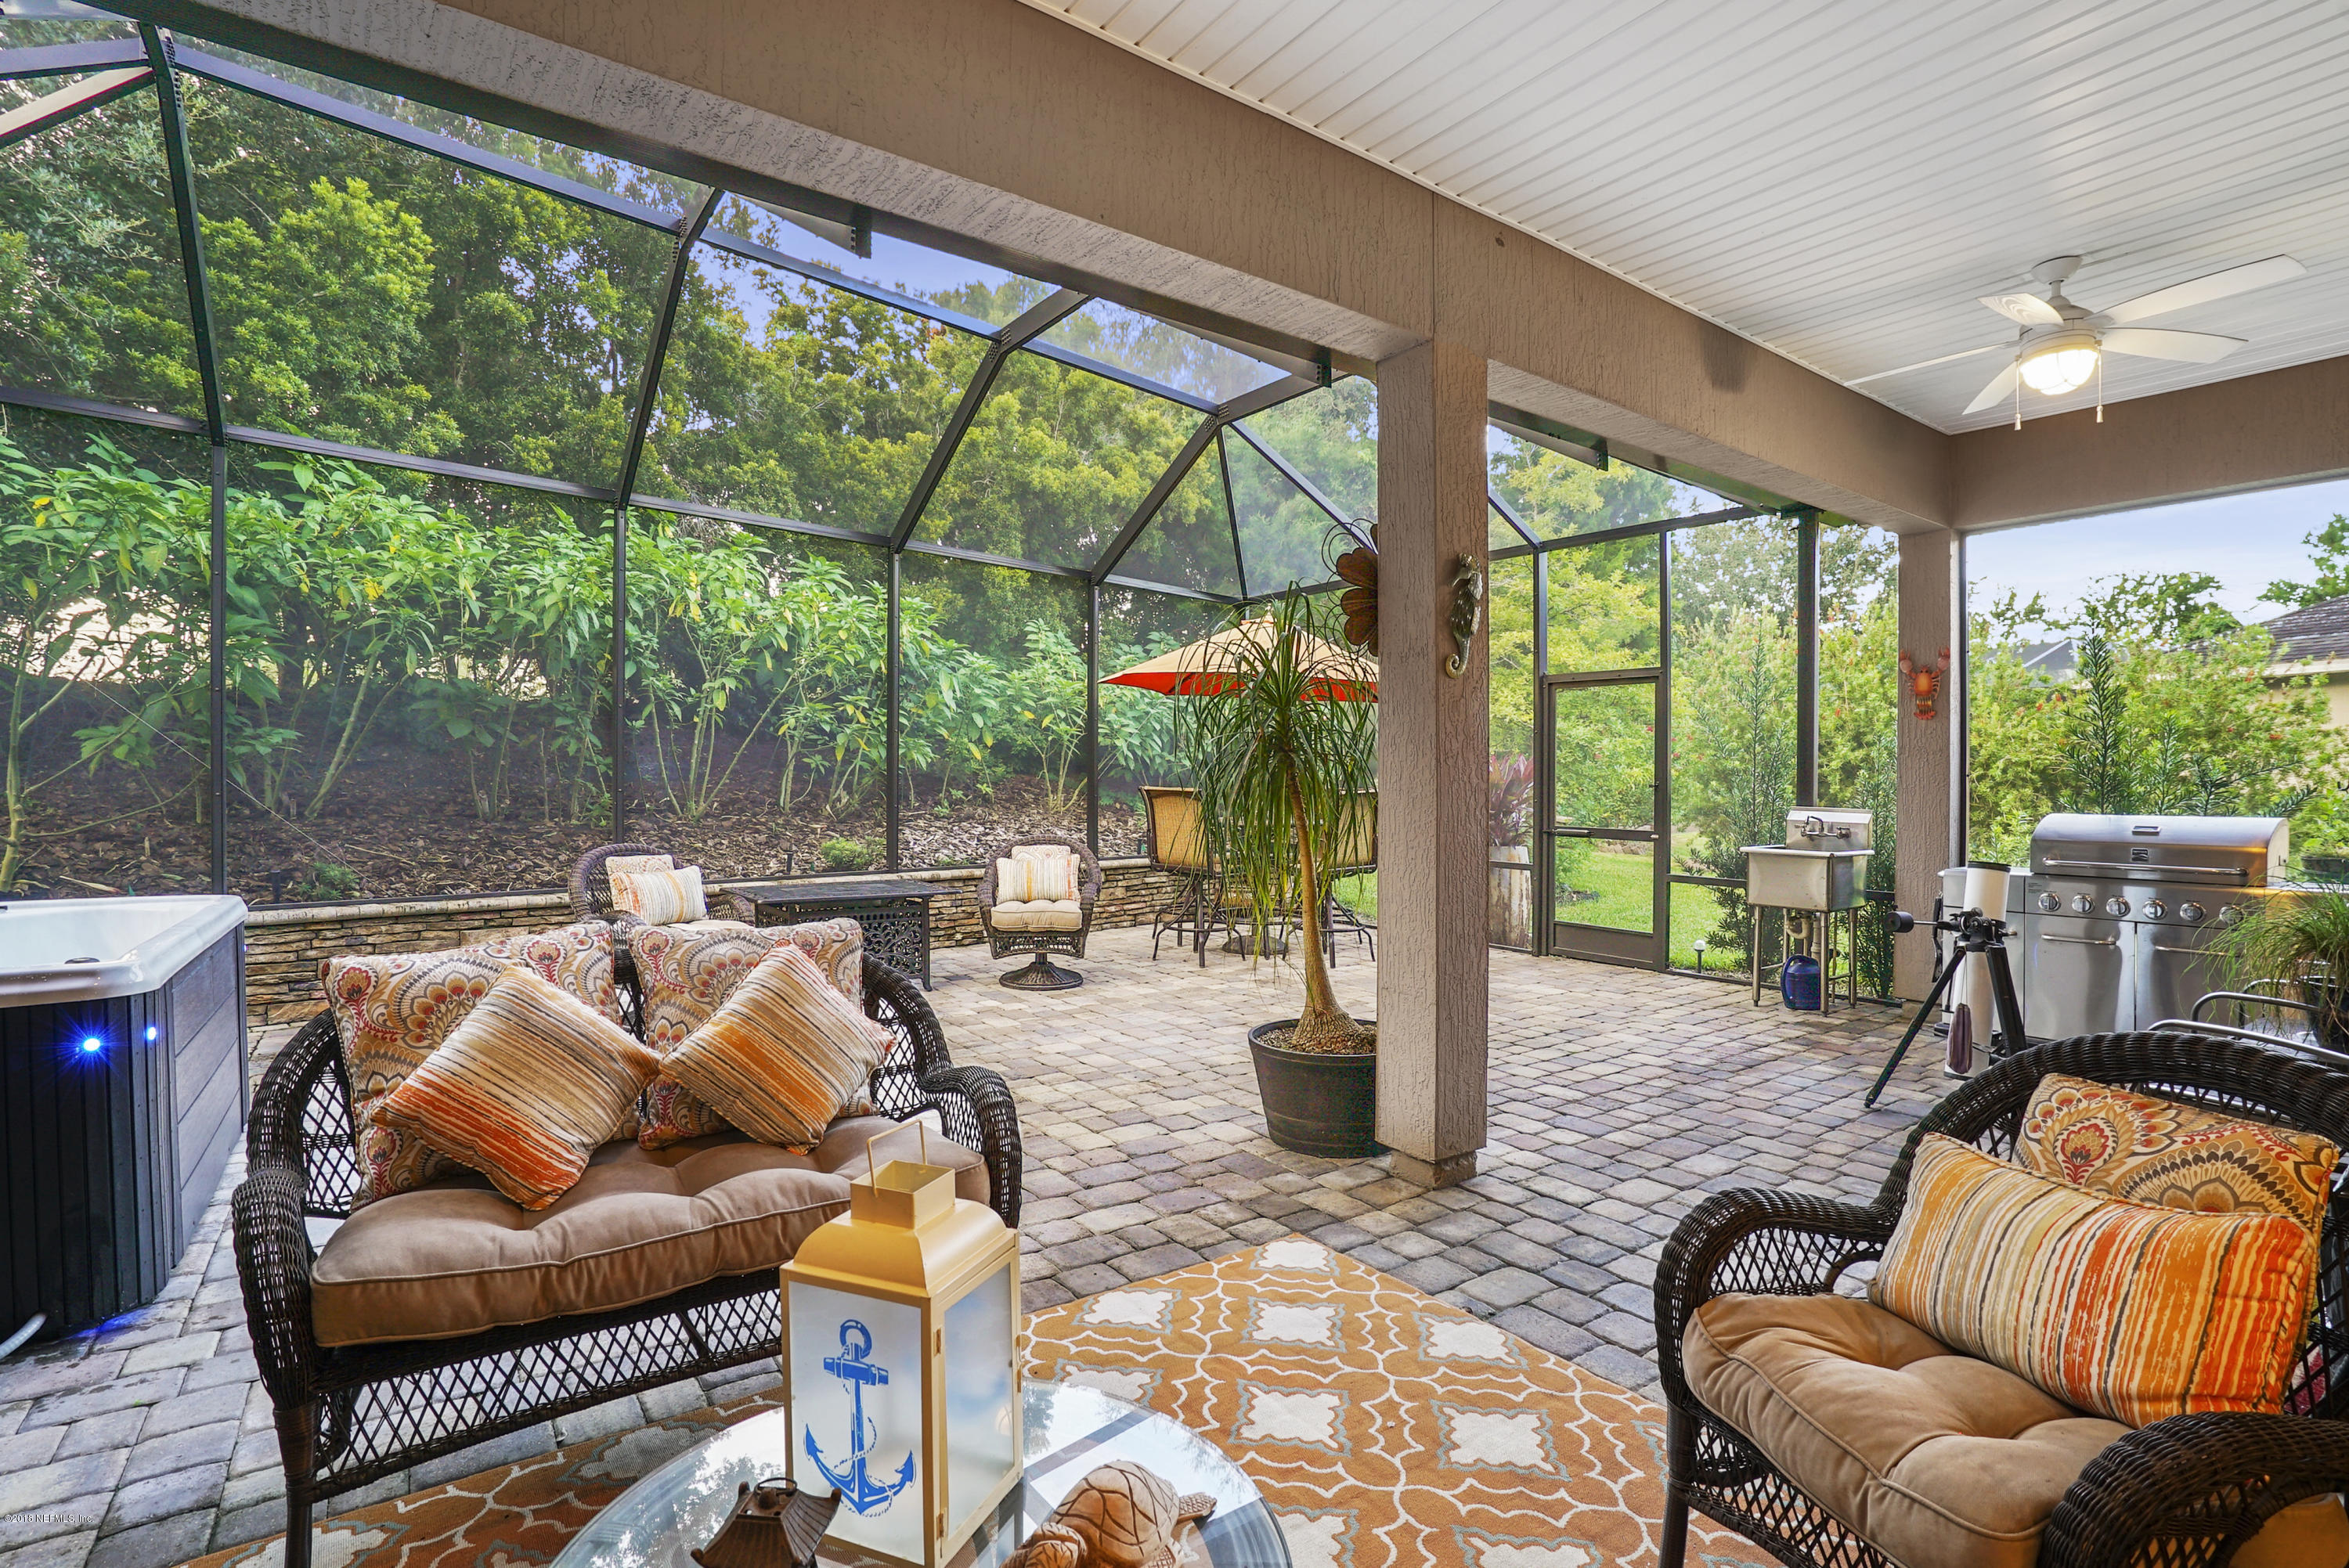 169 WILLOW FALLS, PONTE VEDRA, FLORIDA 32081, 4 Bedrooms Bedrooms, ,3 BathroomsBathrooms,Residential - single family,For sale,WILLOW FALLS,954102